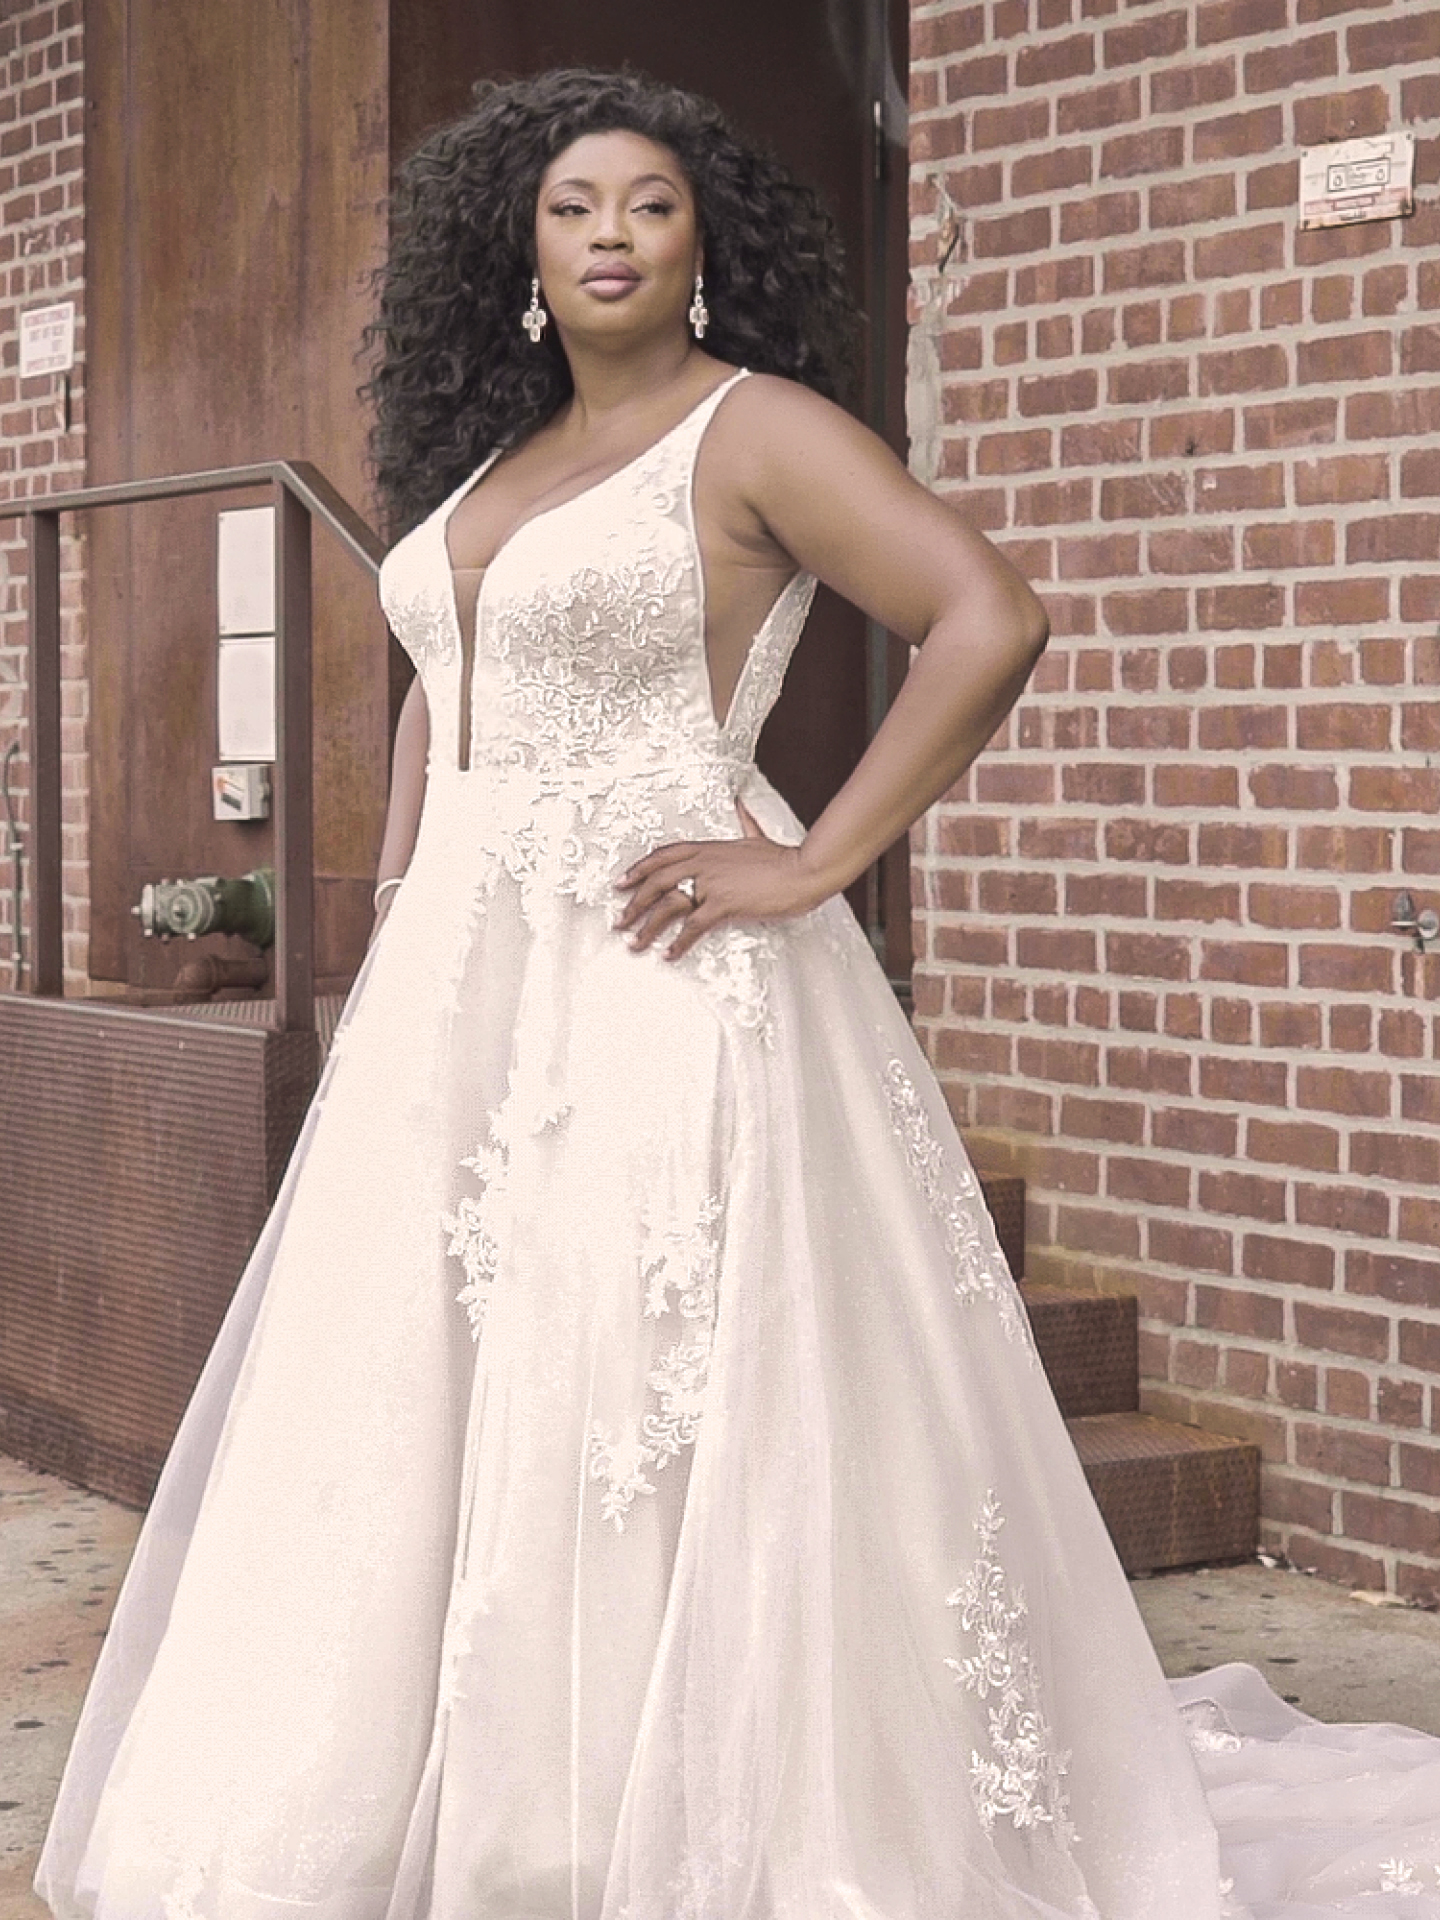 Curvy Model Wearing Plus Size A-line Wedding Dress Called Leticia Lynette by Maggie Sottero